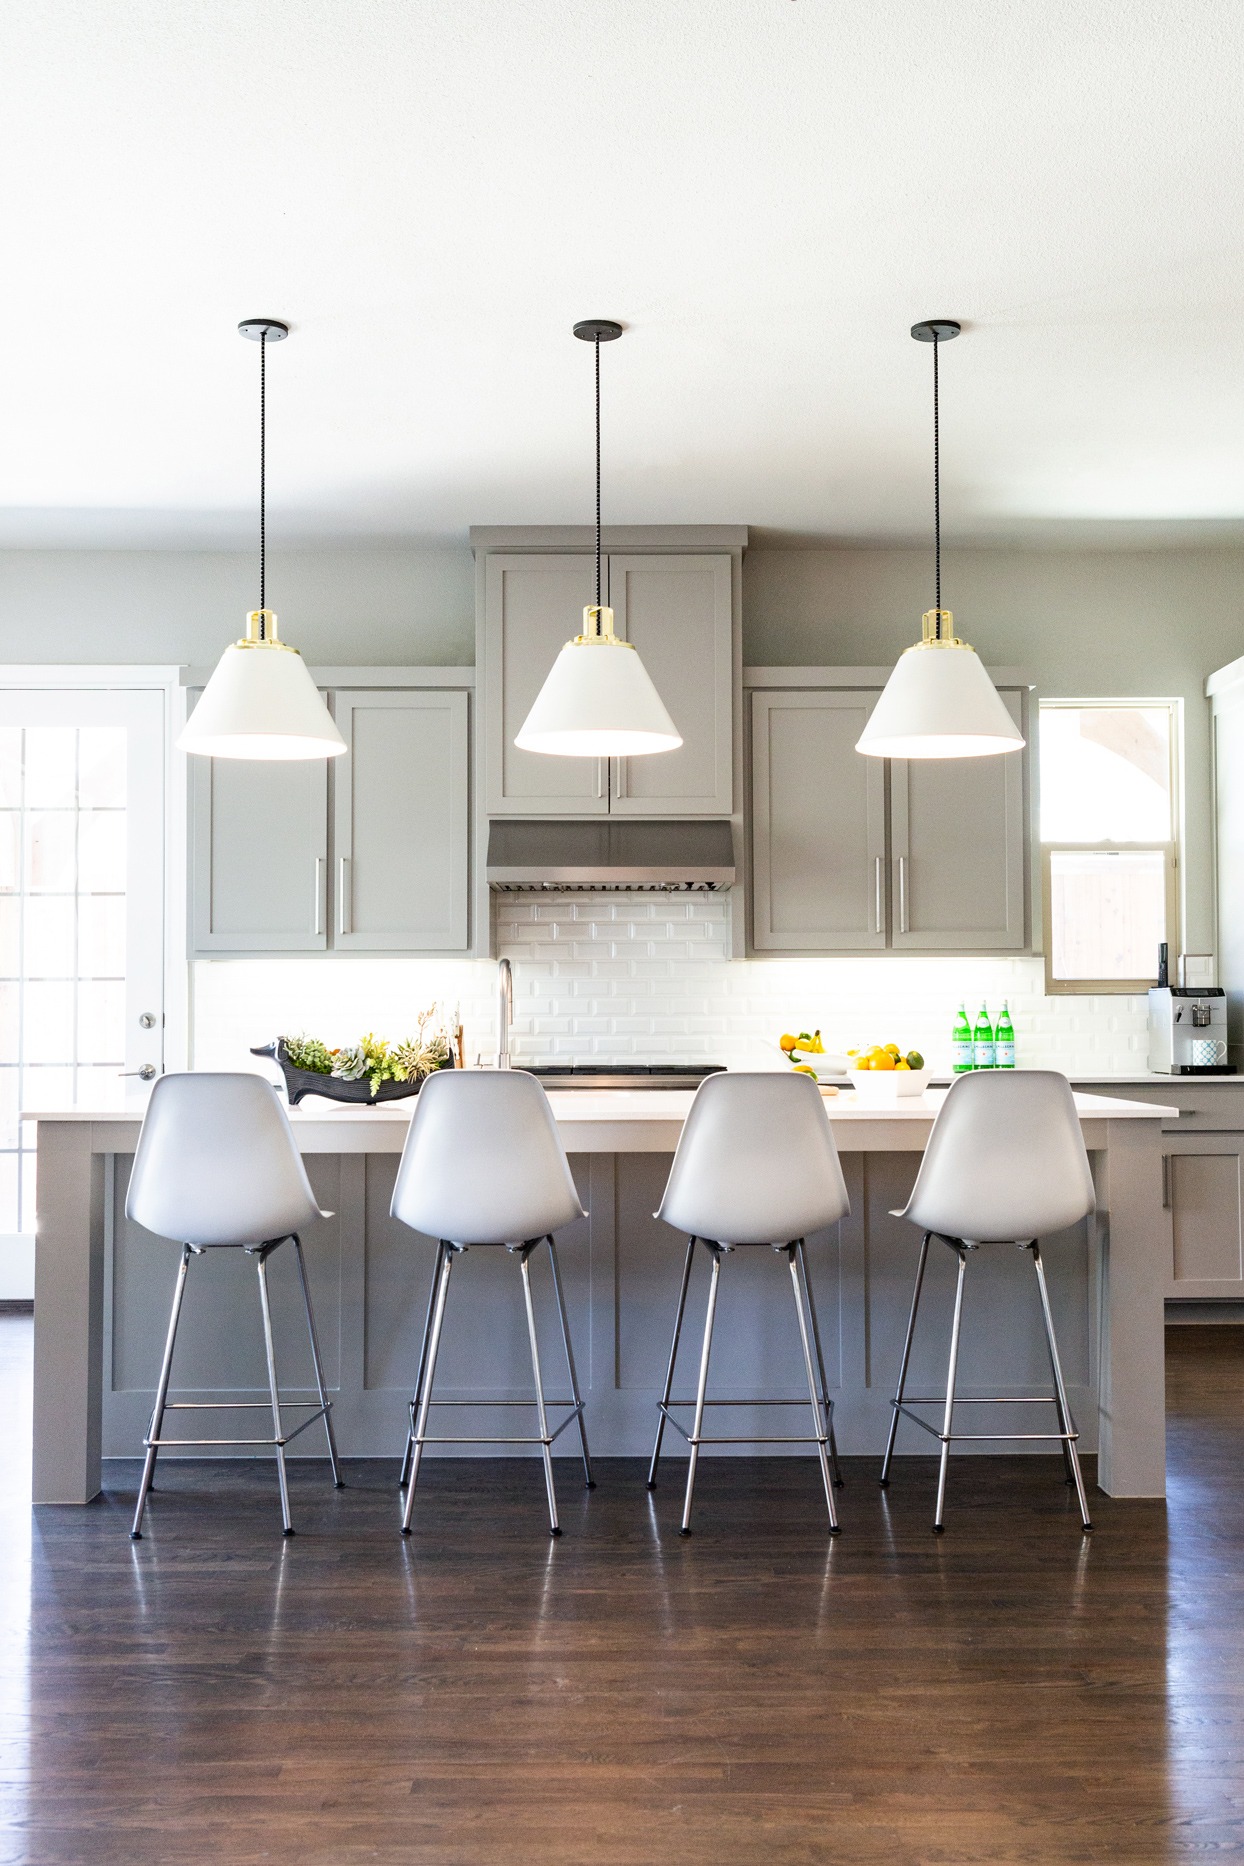 neutral-colored kitchen with white bar stools as island seating